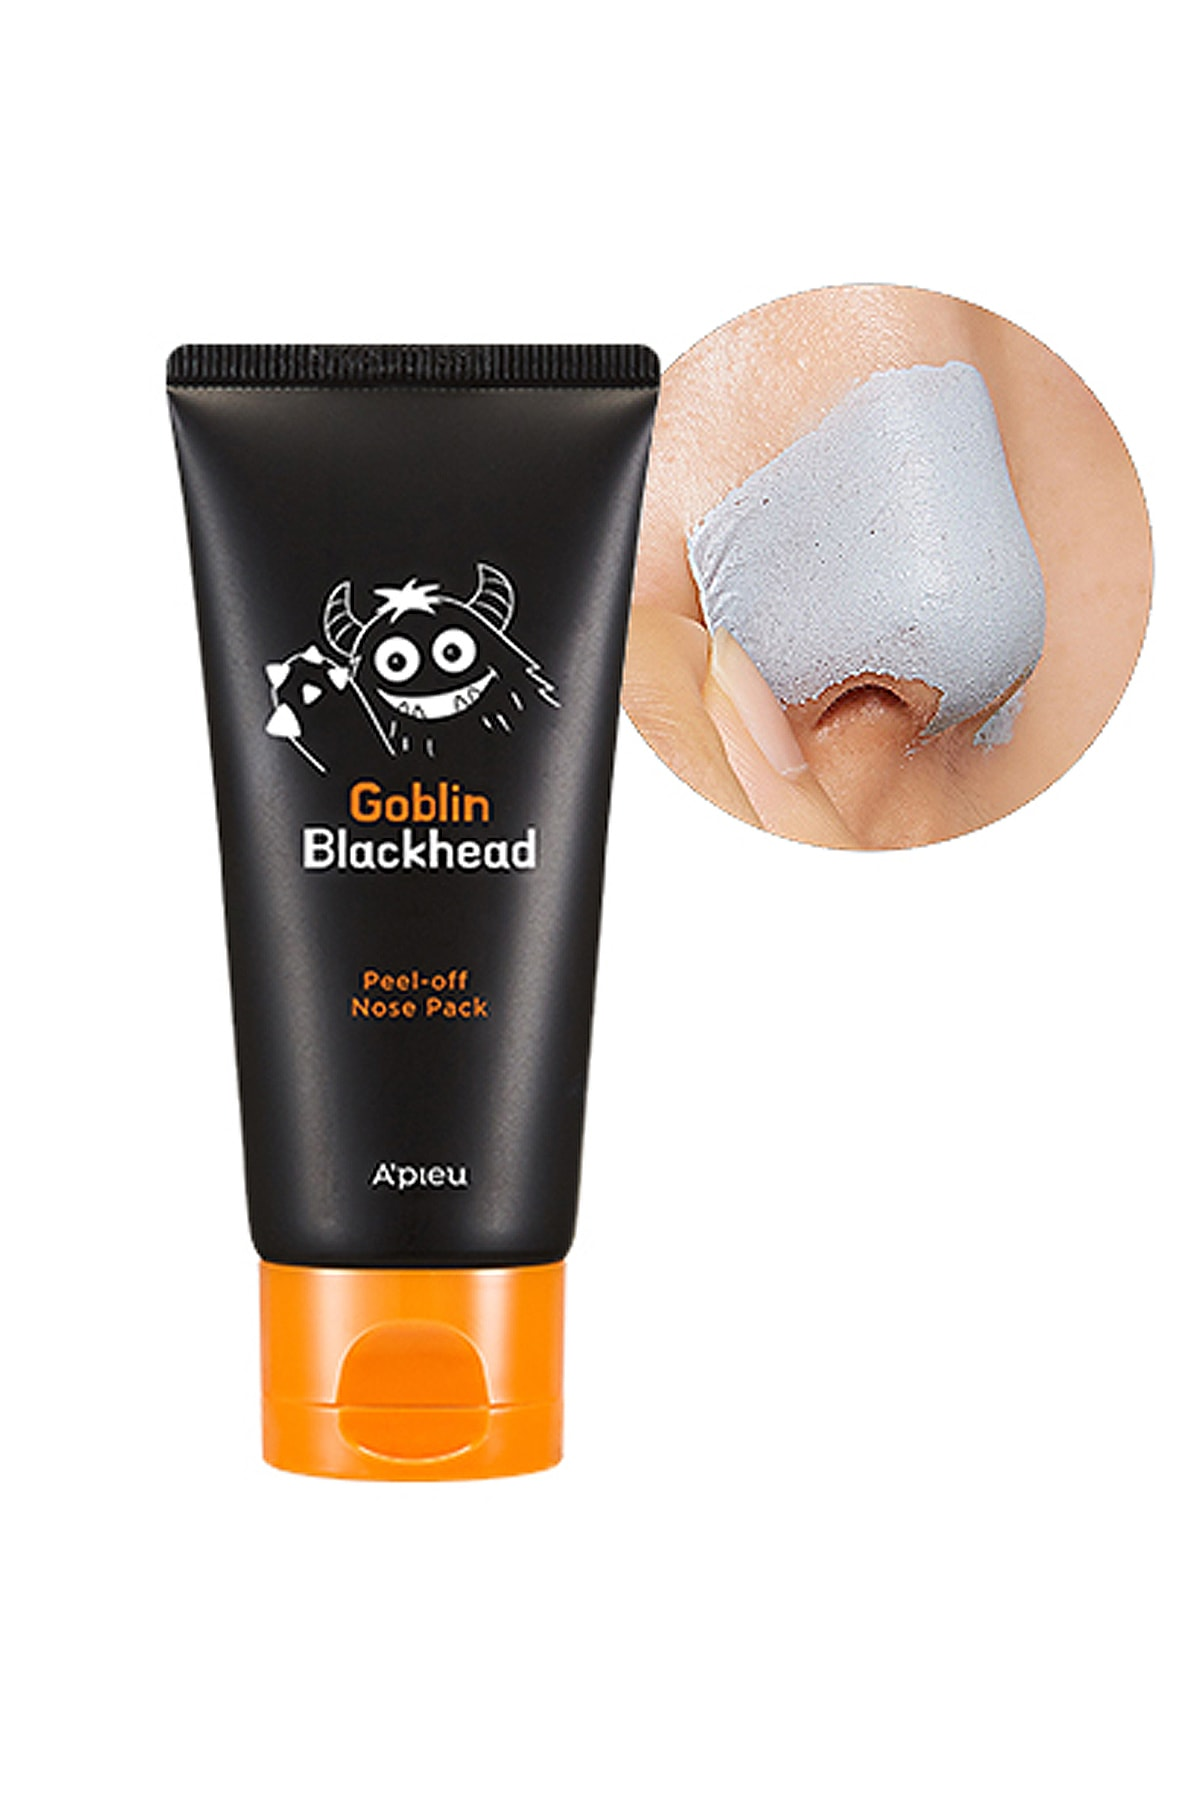 Missha A'PIEU Goblin Blackhead Peel-Off Nose Pack 0